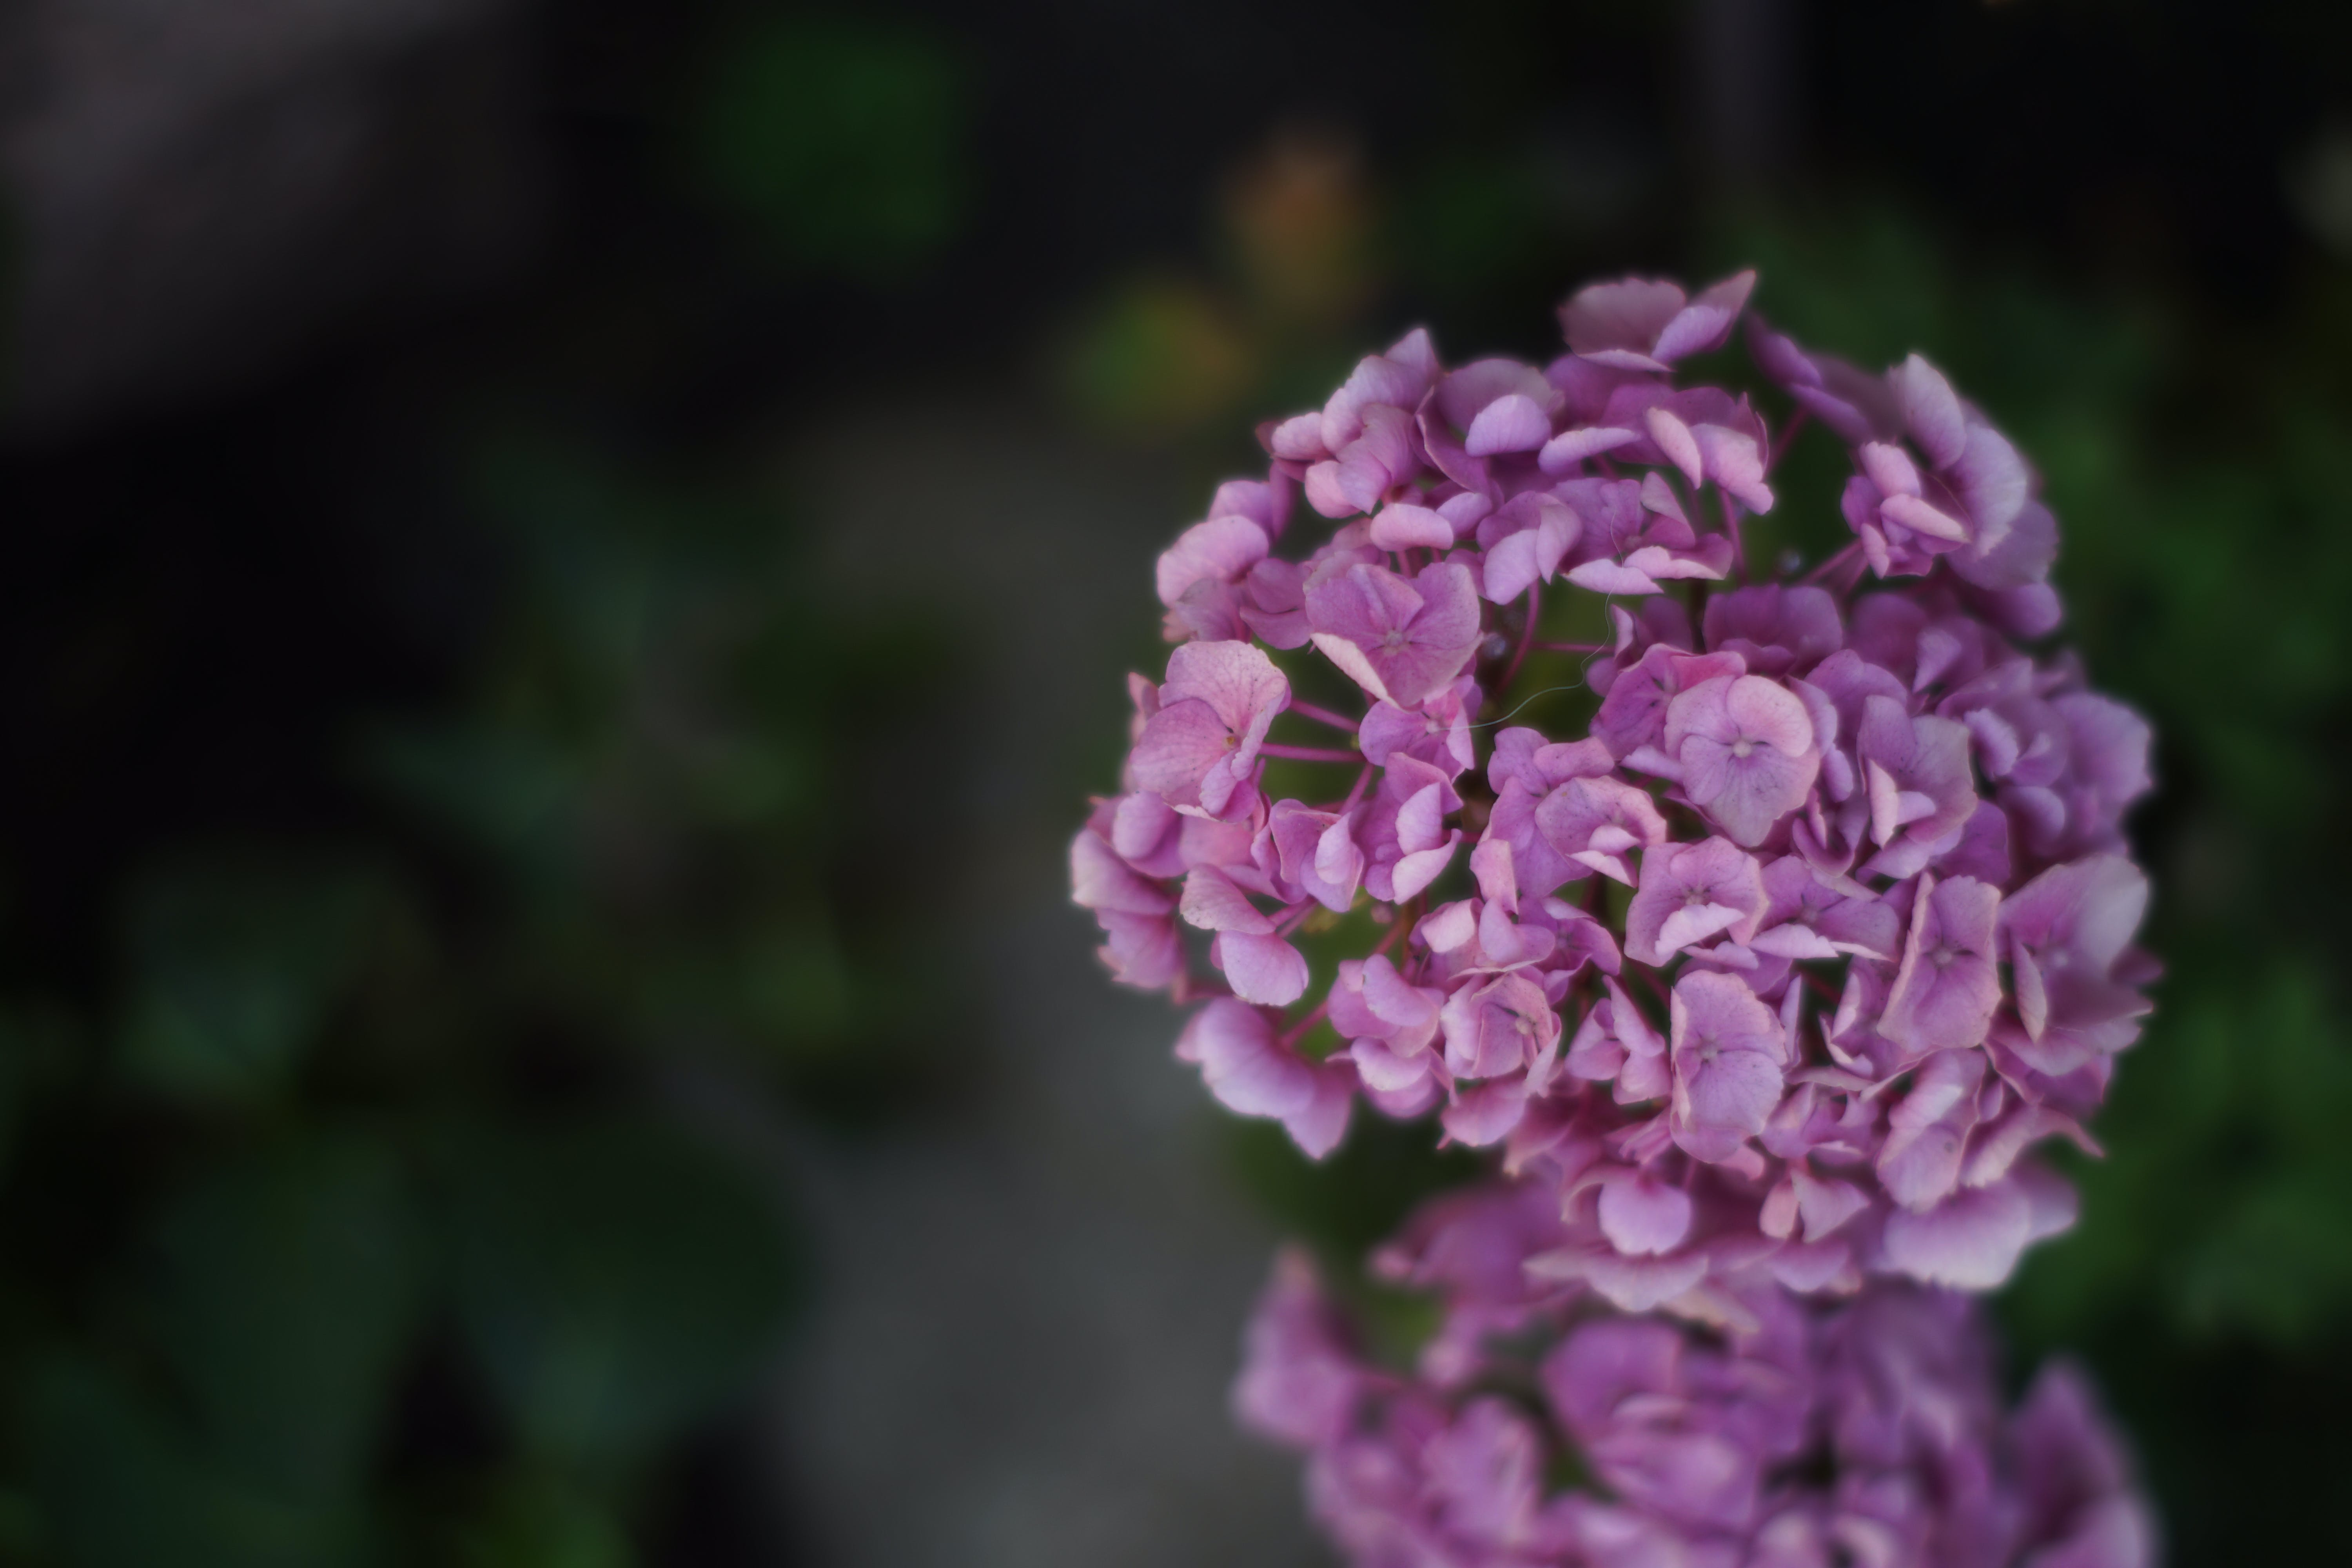 Free stock photo of natural, floral, beautiful flowers, violet flowers